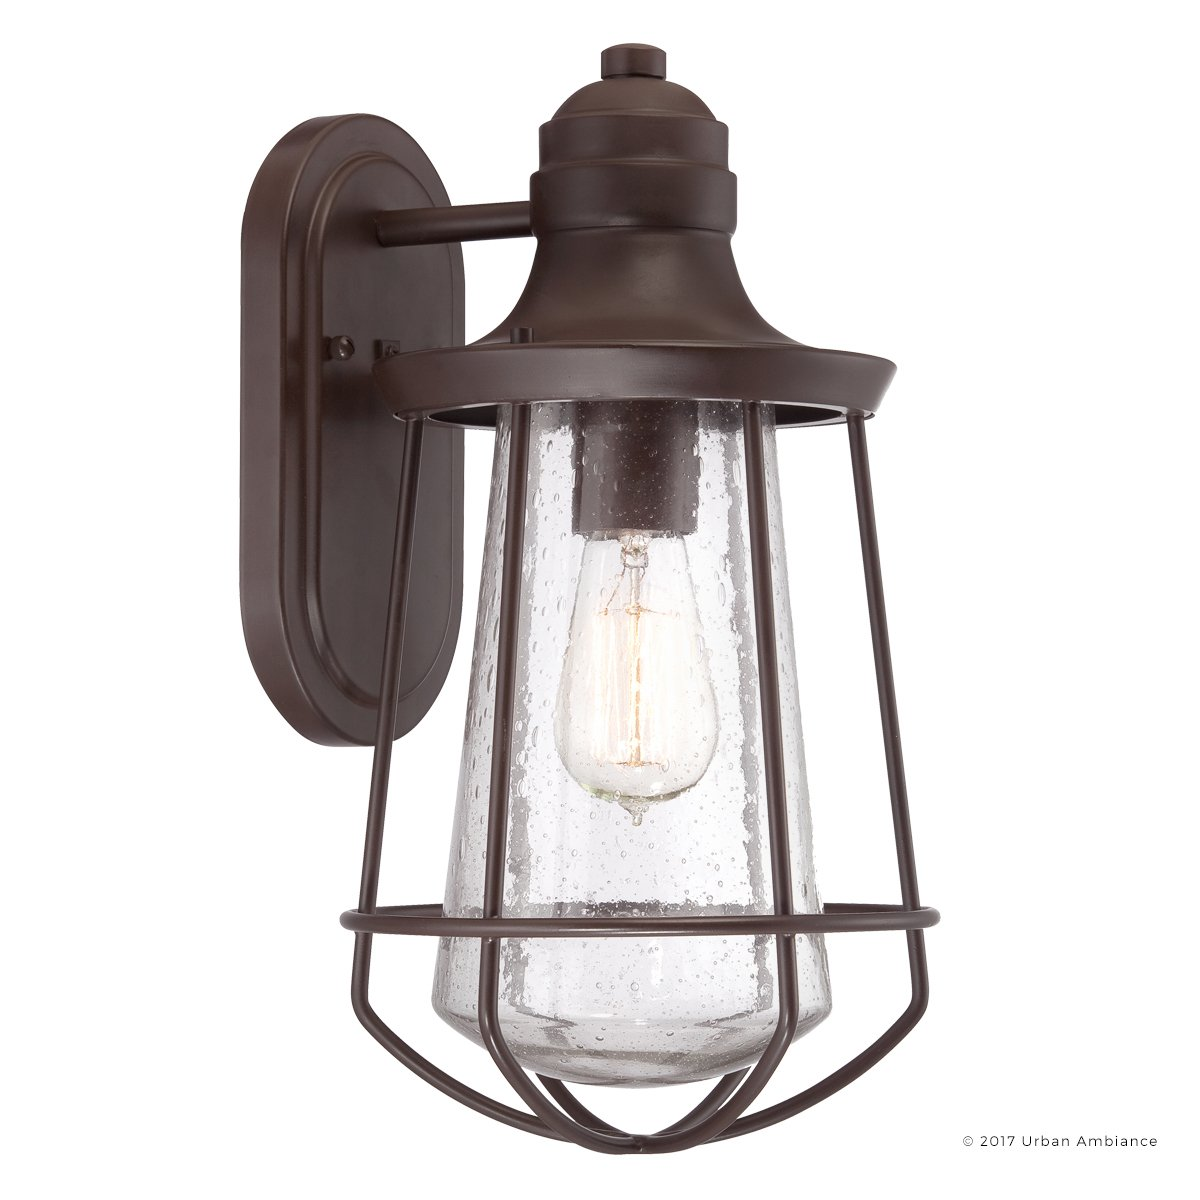 Luxury Vintage Outdoor Wall Light, Medium Size: 15''H x 8.5''W, with Nautical Style Elements, Cage Design, Estate Bronze Finish and Seeded Glass, Includes Edison Bulb, UQL1121 by Urban Ambiance